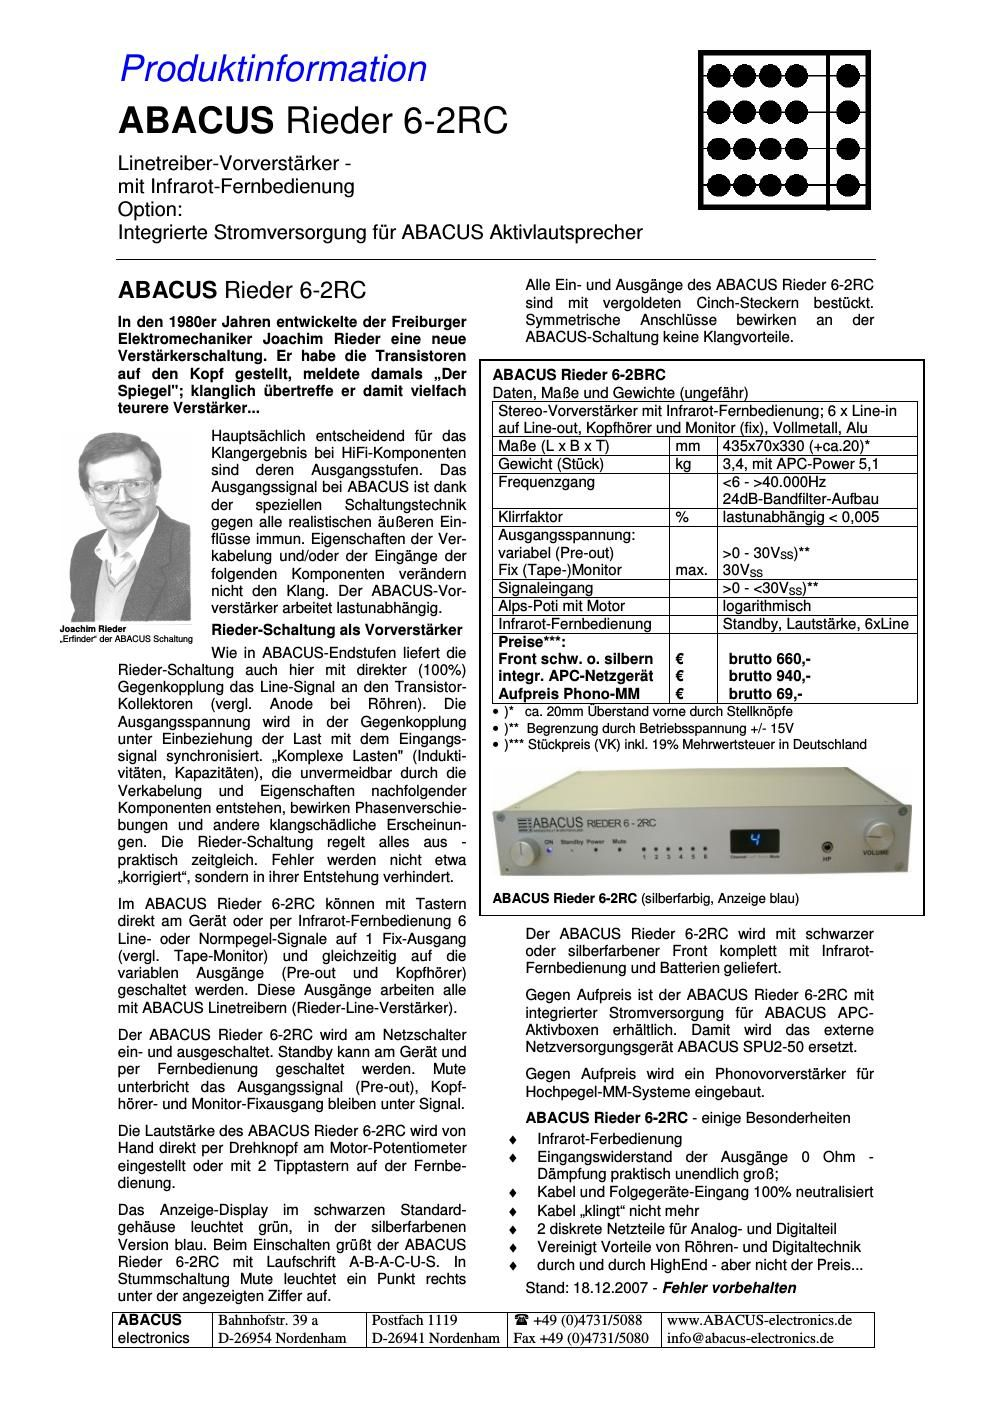 abacus rieder 62 rc brochure